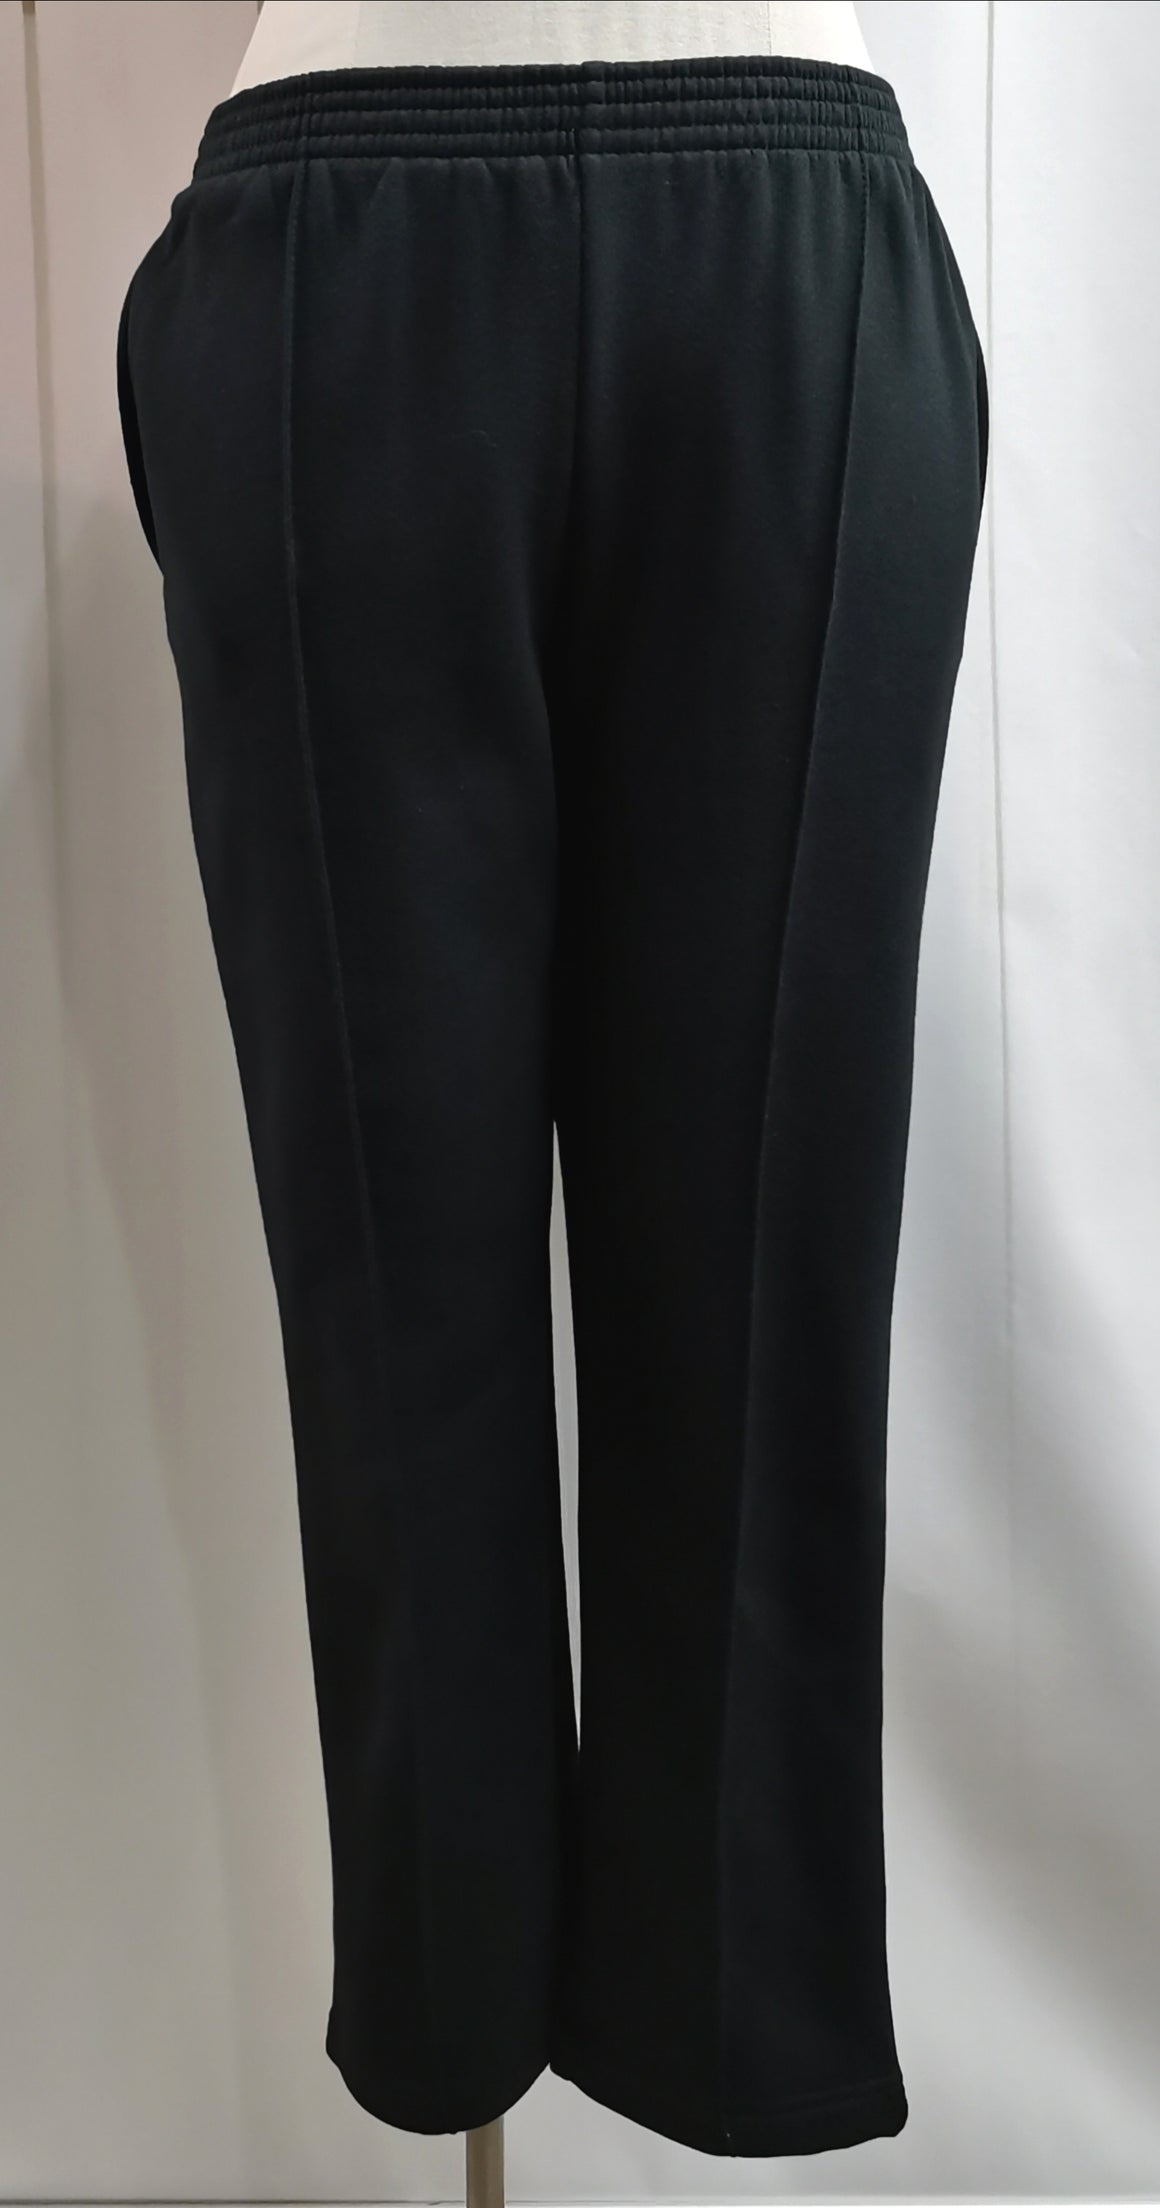 Givoni Pant - Petite Leg Black OFC94 - Fashion Focus